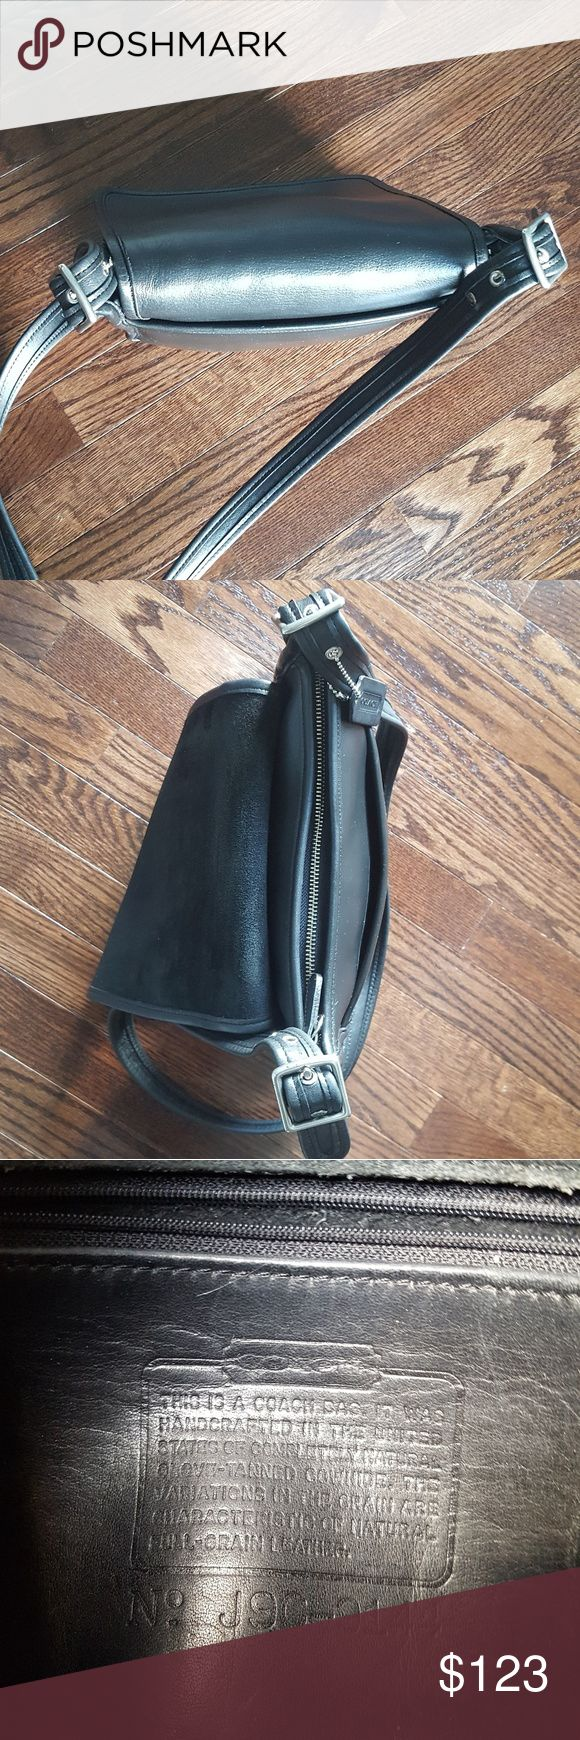 """Vintage Coach Black Leather Saddle bag crossbody Unisex  black cowhide front flap Cross Body Bag  Measurements:  10""""L x 10.5""""H x 3""""W  Black Leather  Coach Vintage Front Flap crossgody bag -9144 Made USA (SILVER)  Leather is in perfect condition  Inside lining is suede like leather  black,?cross body,?vintage,?Coach Cross Body Bags Coach Bags Messenger Bags"""